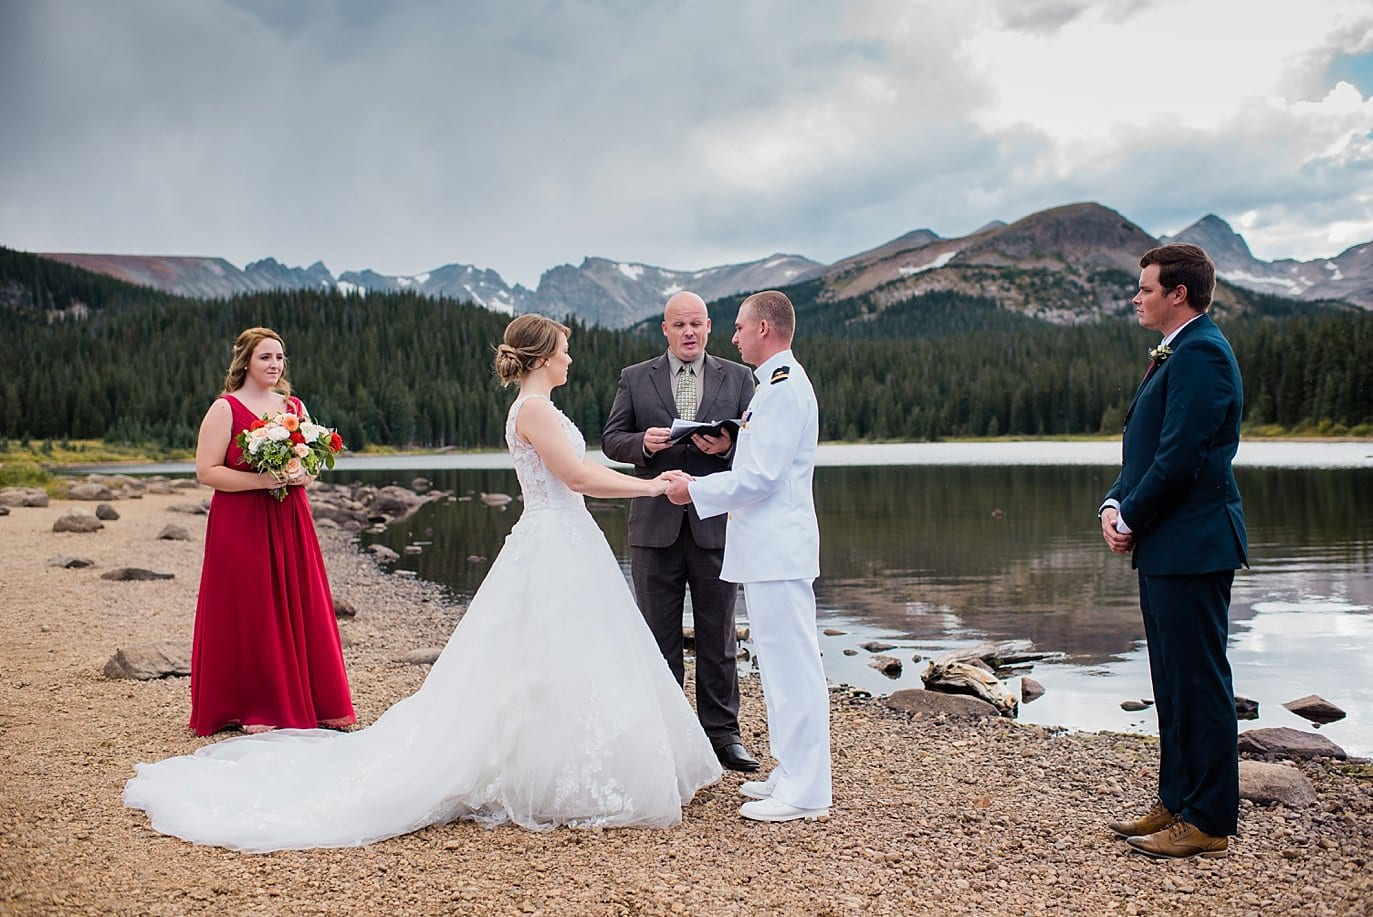 bride and groom elope outdoors in Colorado mountains by Colorado Wedding photographer, Jennie Crate